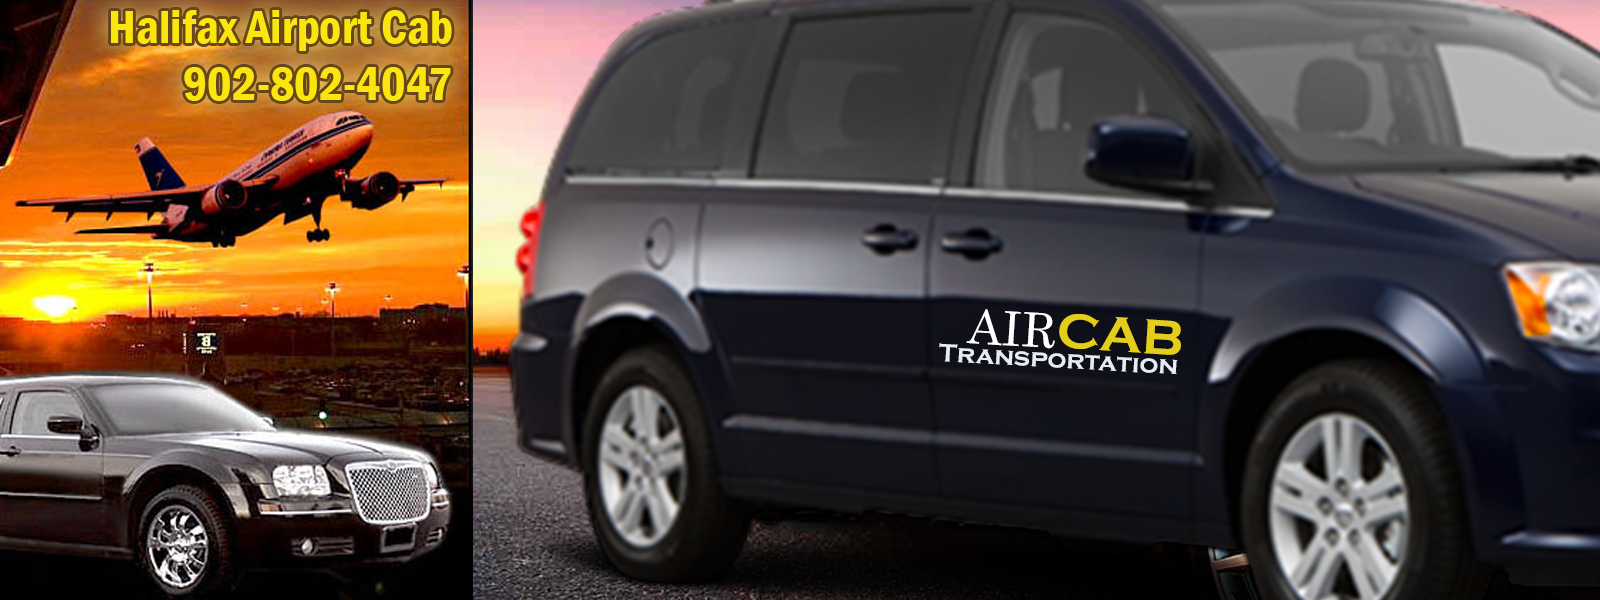 Home - Halifax Airport Cab Taxi SUV Service